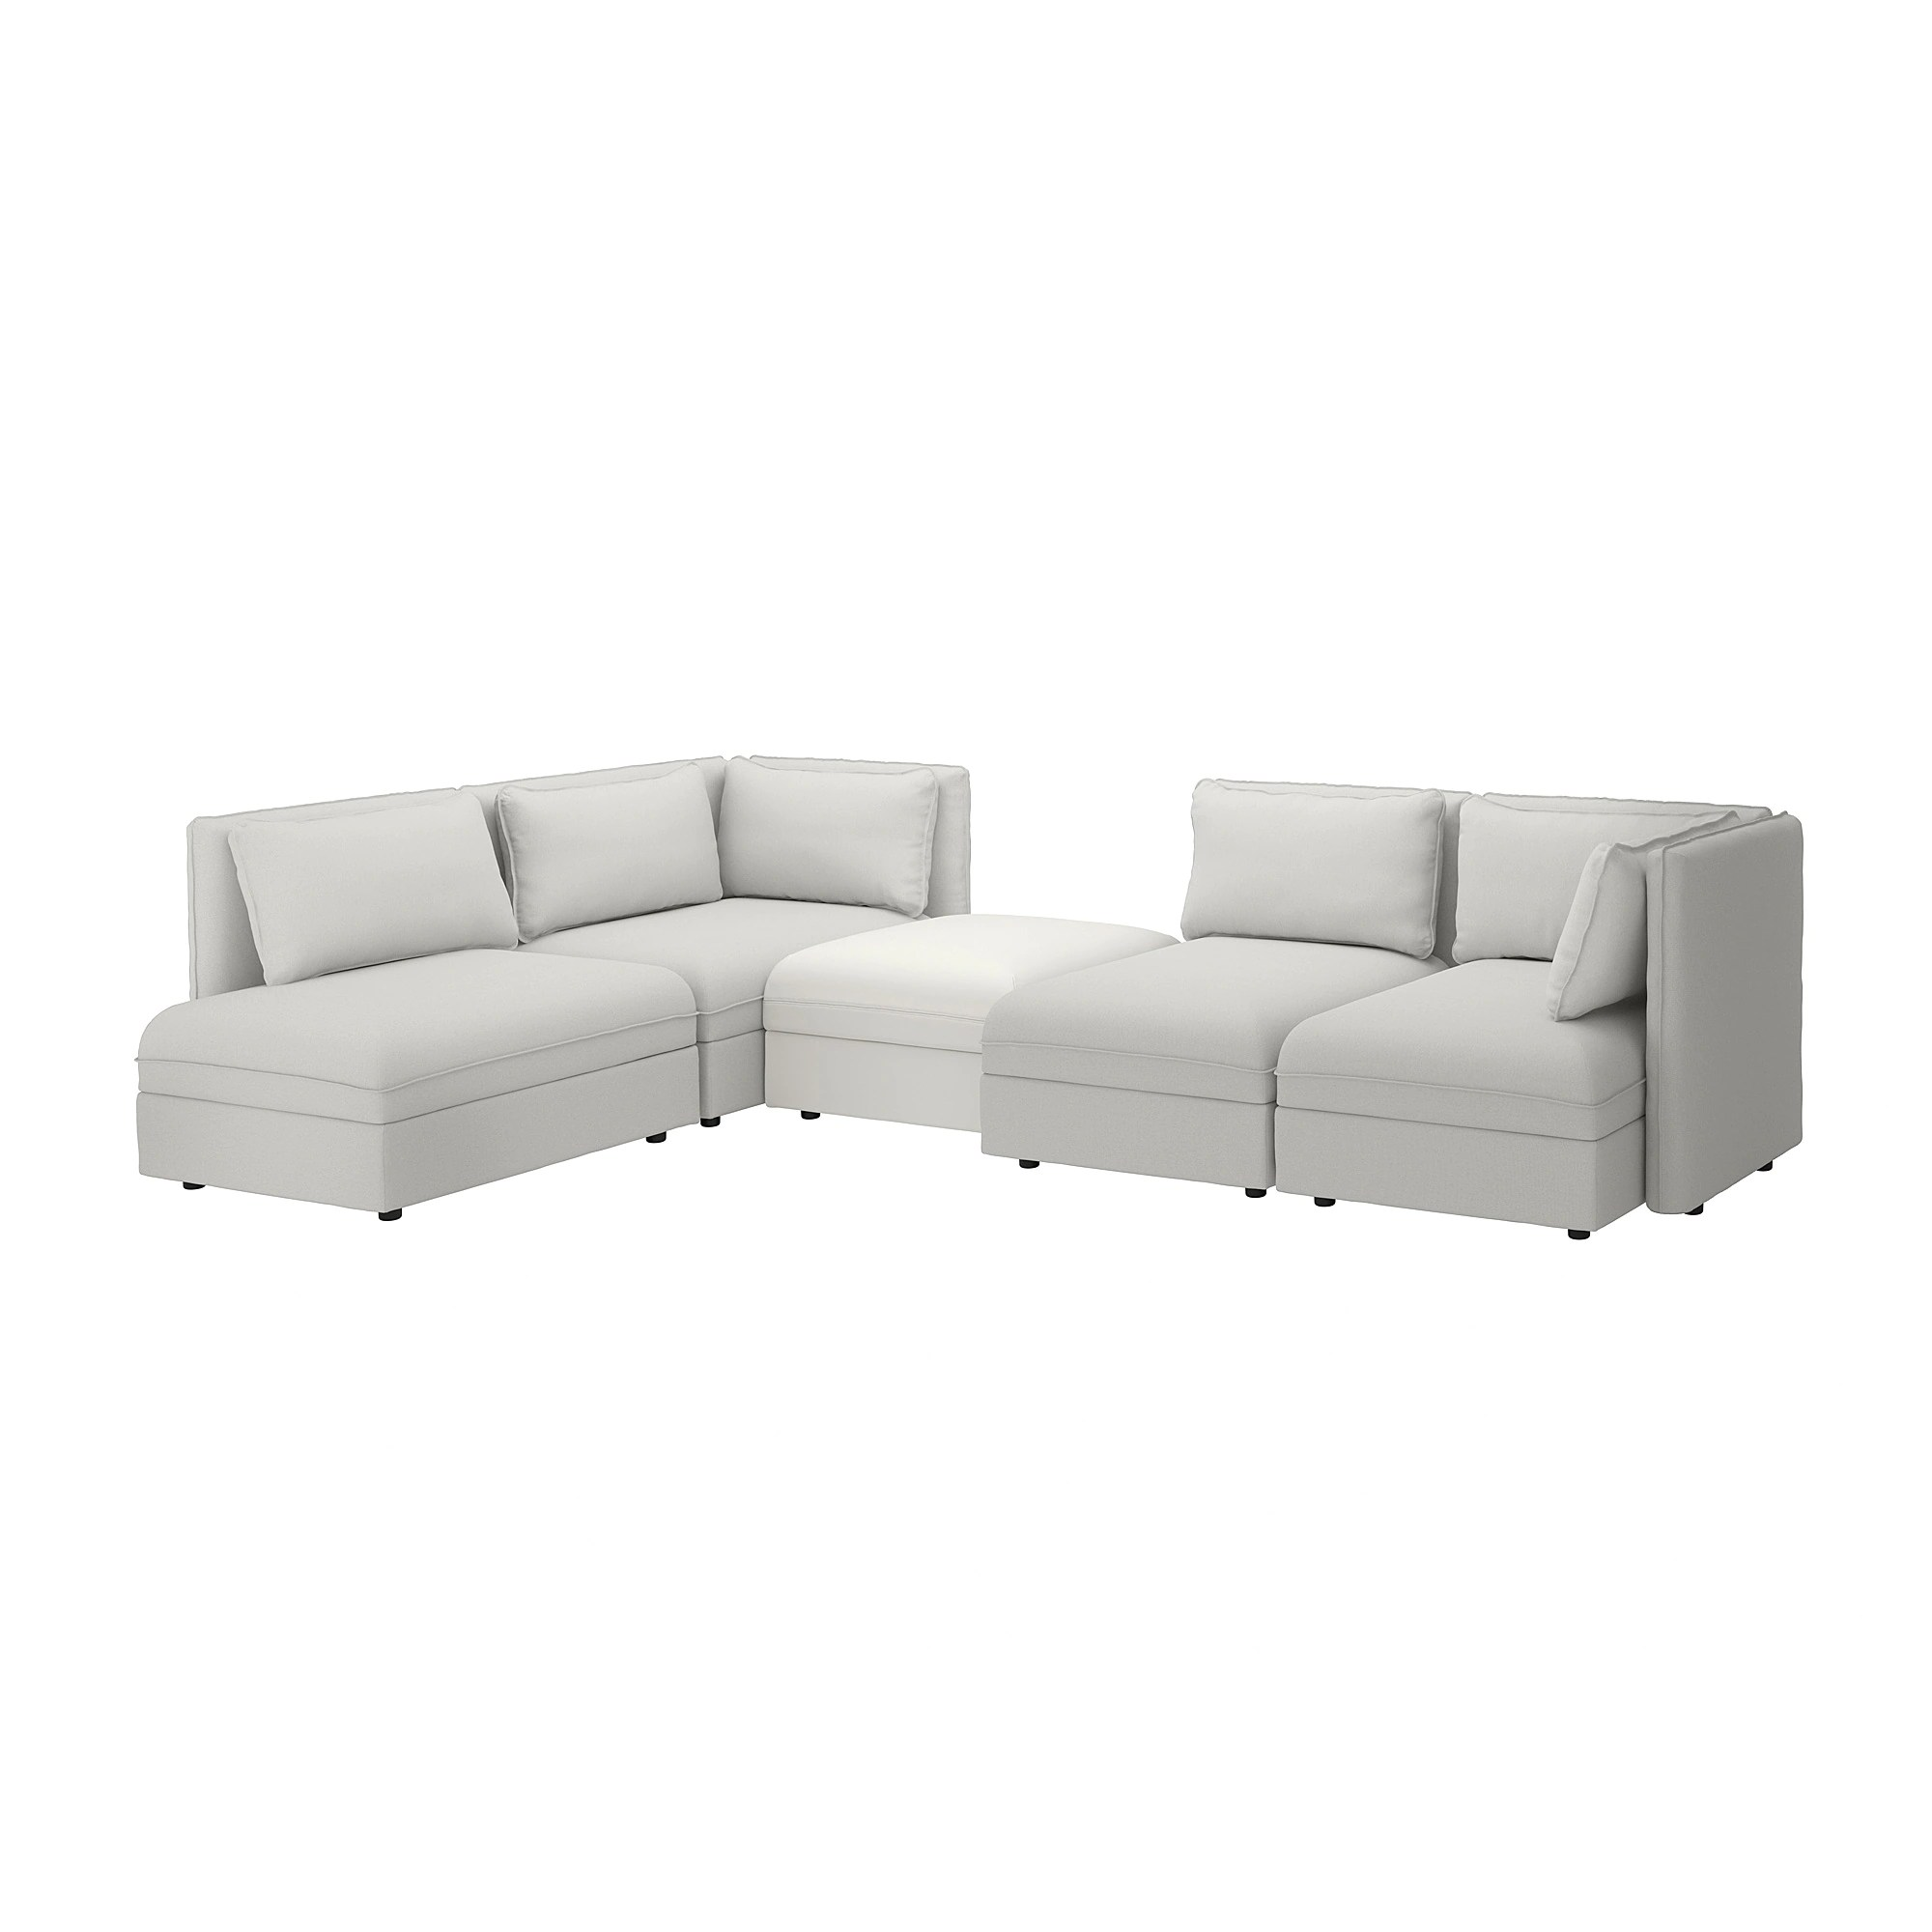 Vallentuna 4 Seat Modular Sofa With 3 Beds Vallentuna Modular Corner Sofa 4 Seat With Storage Orrsta Murum Light Gray White